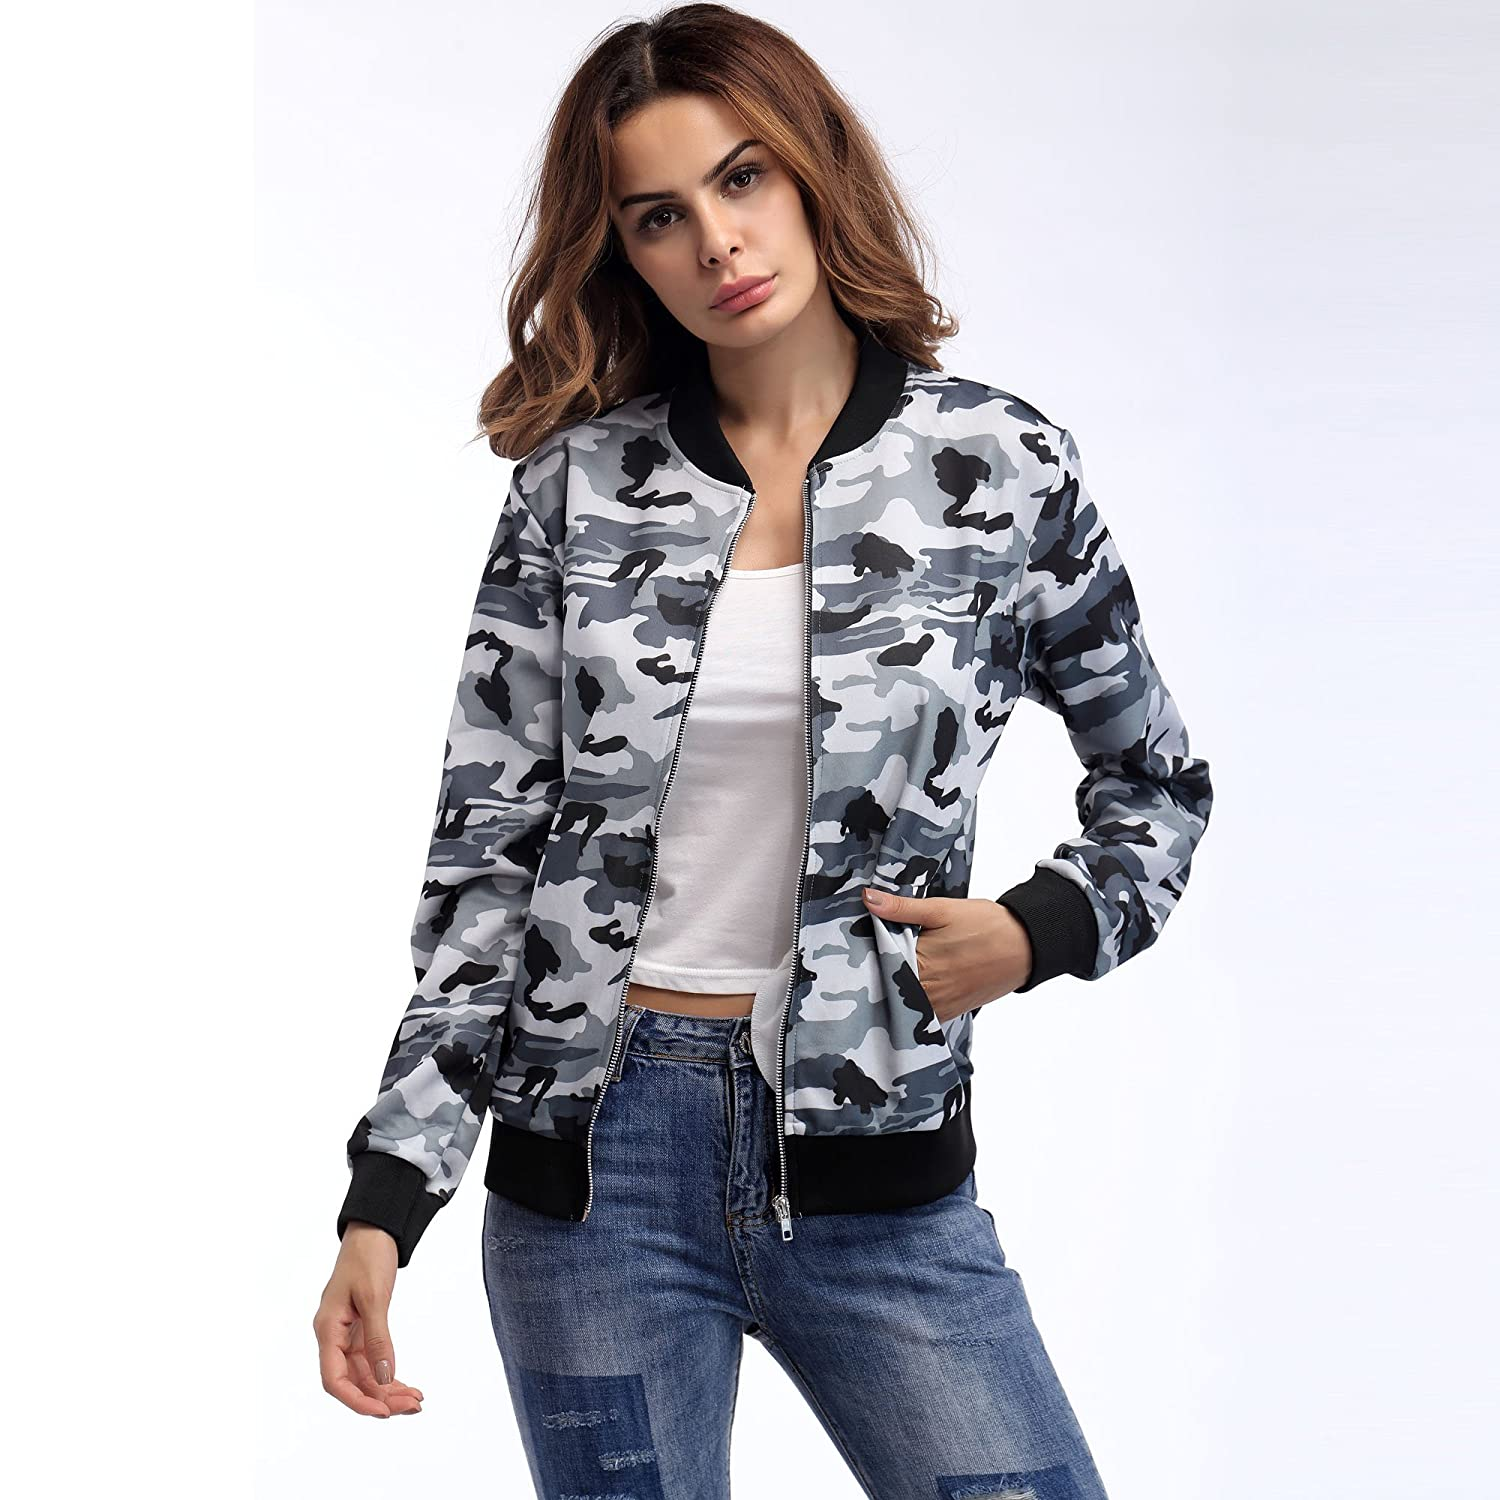 BOFUTE Womens Casual Stand Collar Long Sleeve Zip Up Jacket Coat with Pockets